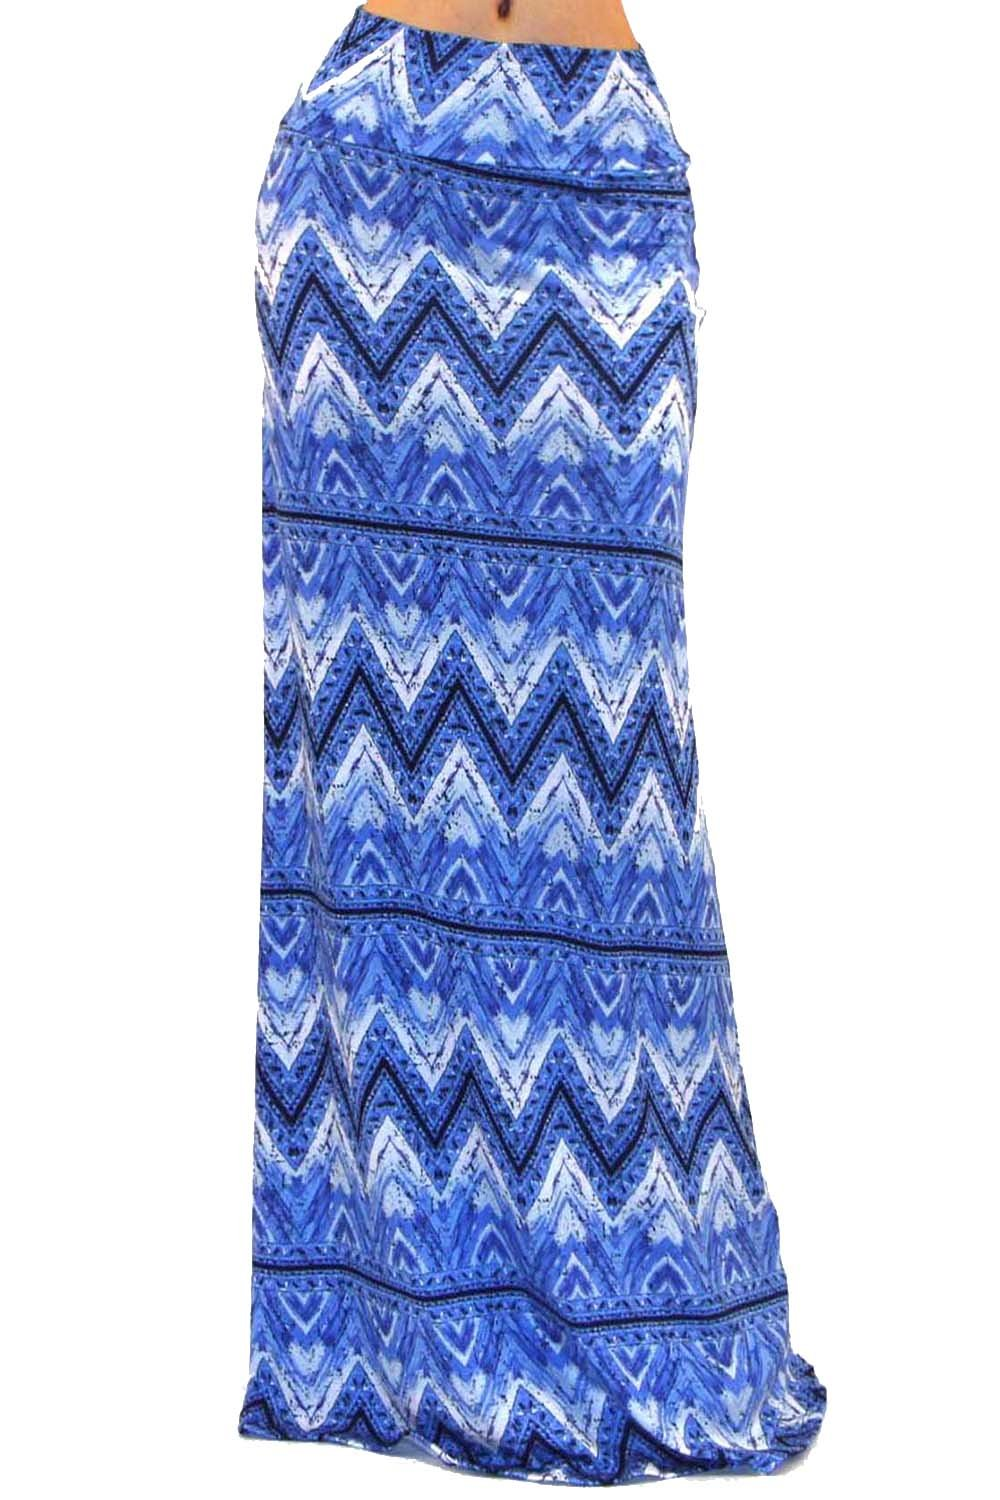 Vivicastle Women's Colorful Tie Dye Acid Washed High Waist Foldover Maxi Skirt (Small, as16, Blue)